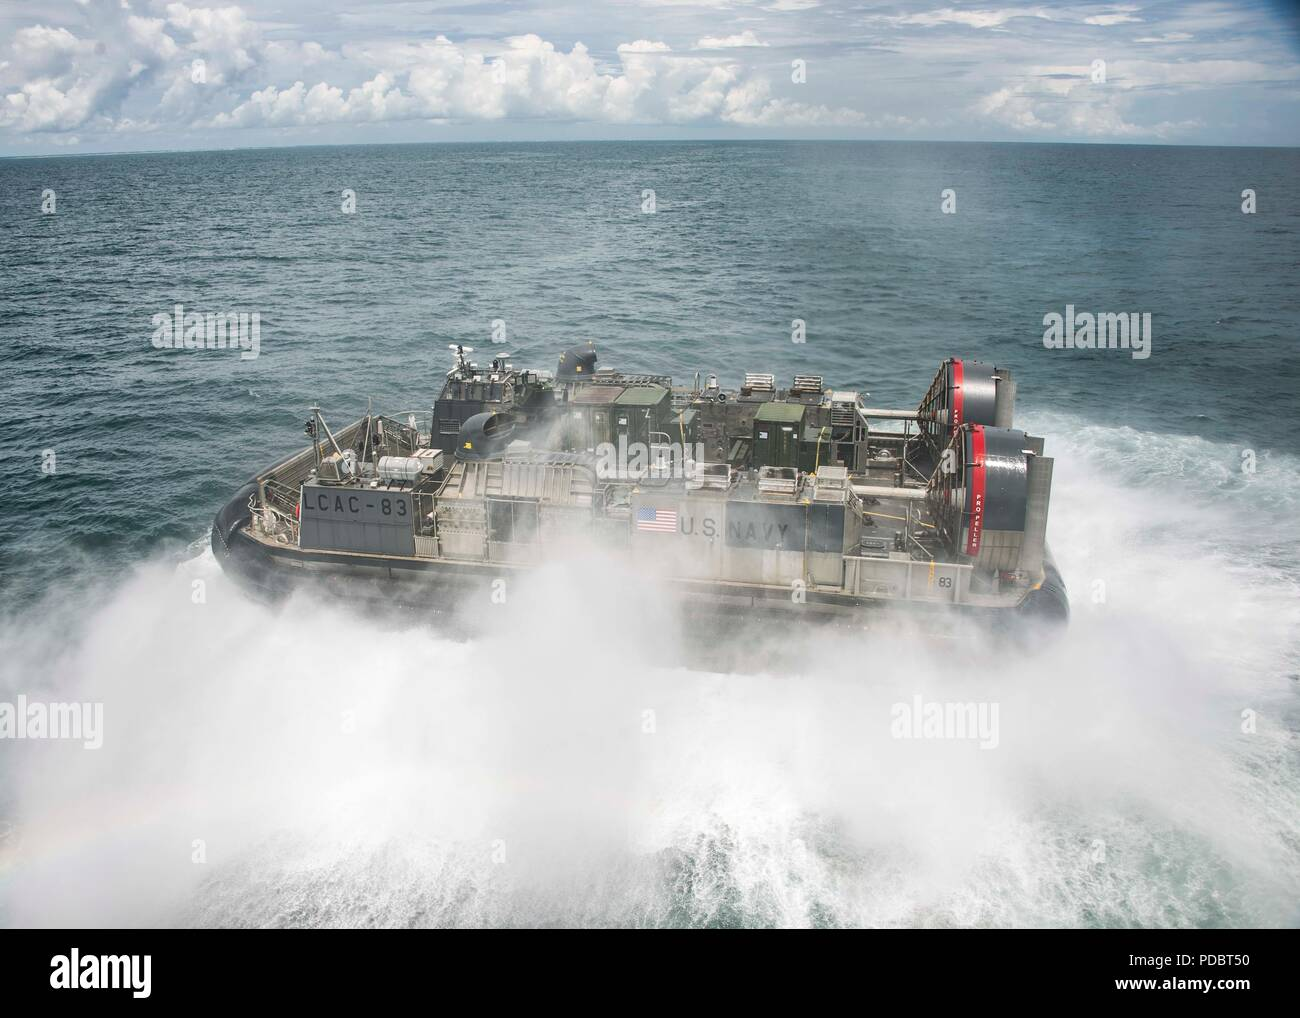 ATLANTIC OCEAN (Aug. 4, 2018) Landing Craft, Air Cushion 83, attached to Assault Craft Unit 4, departs the Wasp-class amphibious assault ship USS Iwo Jima (LHD 7), Aug. 4, 2018. Iwo Jima is deployed with its amphibious ready group in support of maritime security operations and theatre security cooperation efforts in Europe and the Middle East. (U.S. Navy photo by Mass Communication Specialist 3rd Class Dominick A. Cremeans/Released) Stock Photo